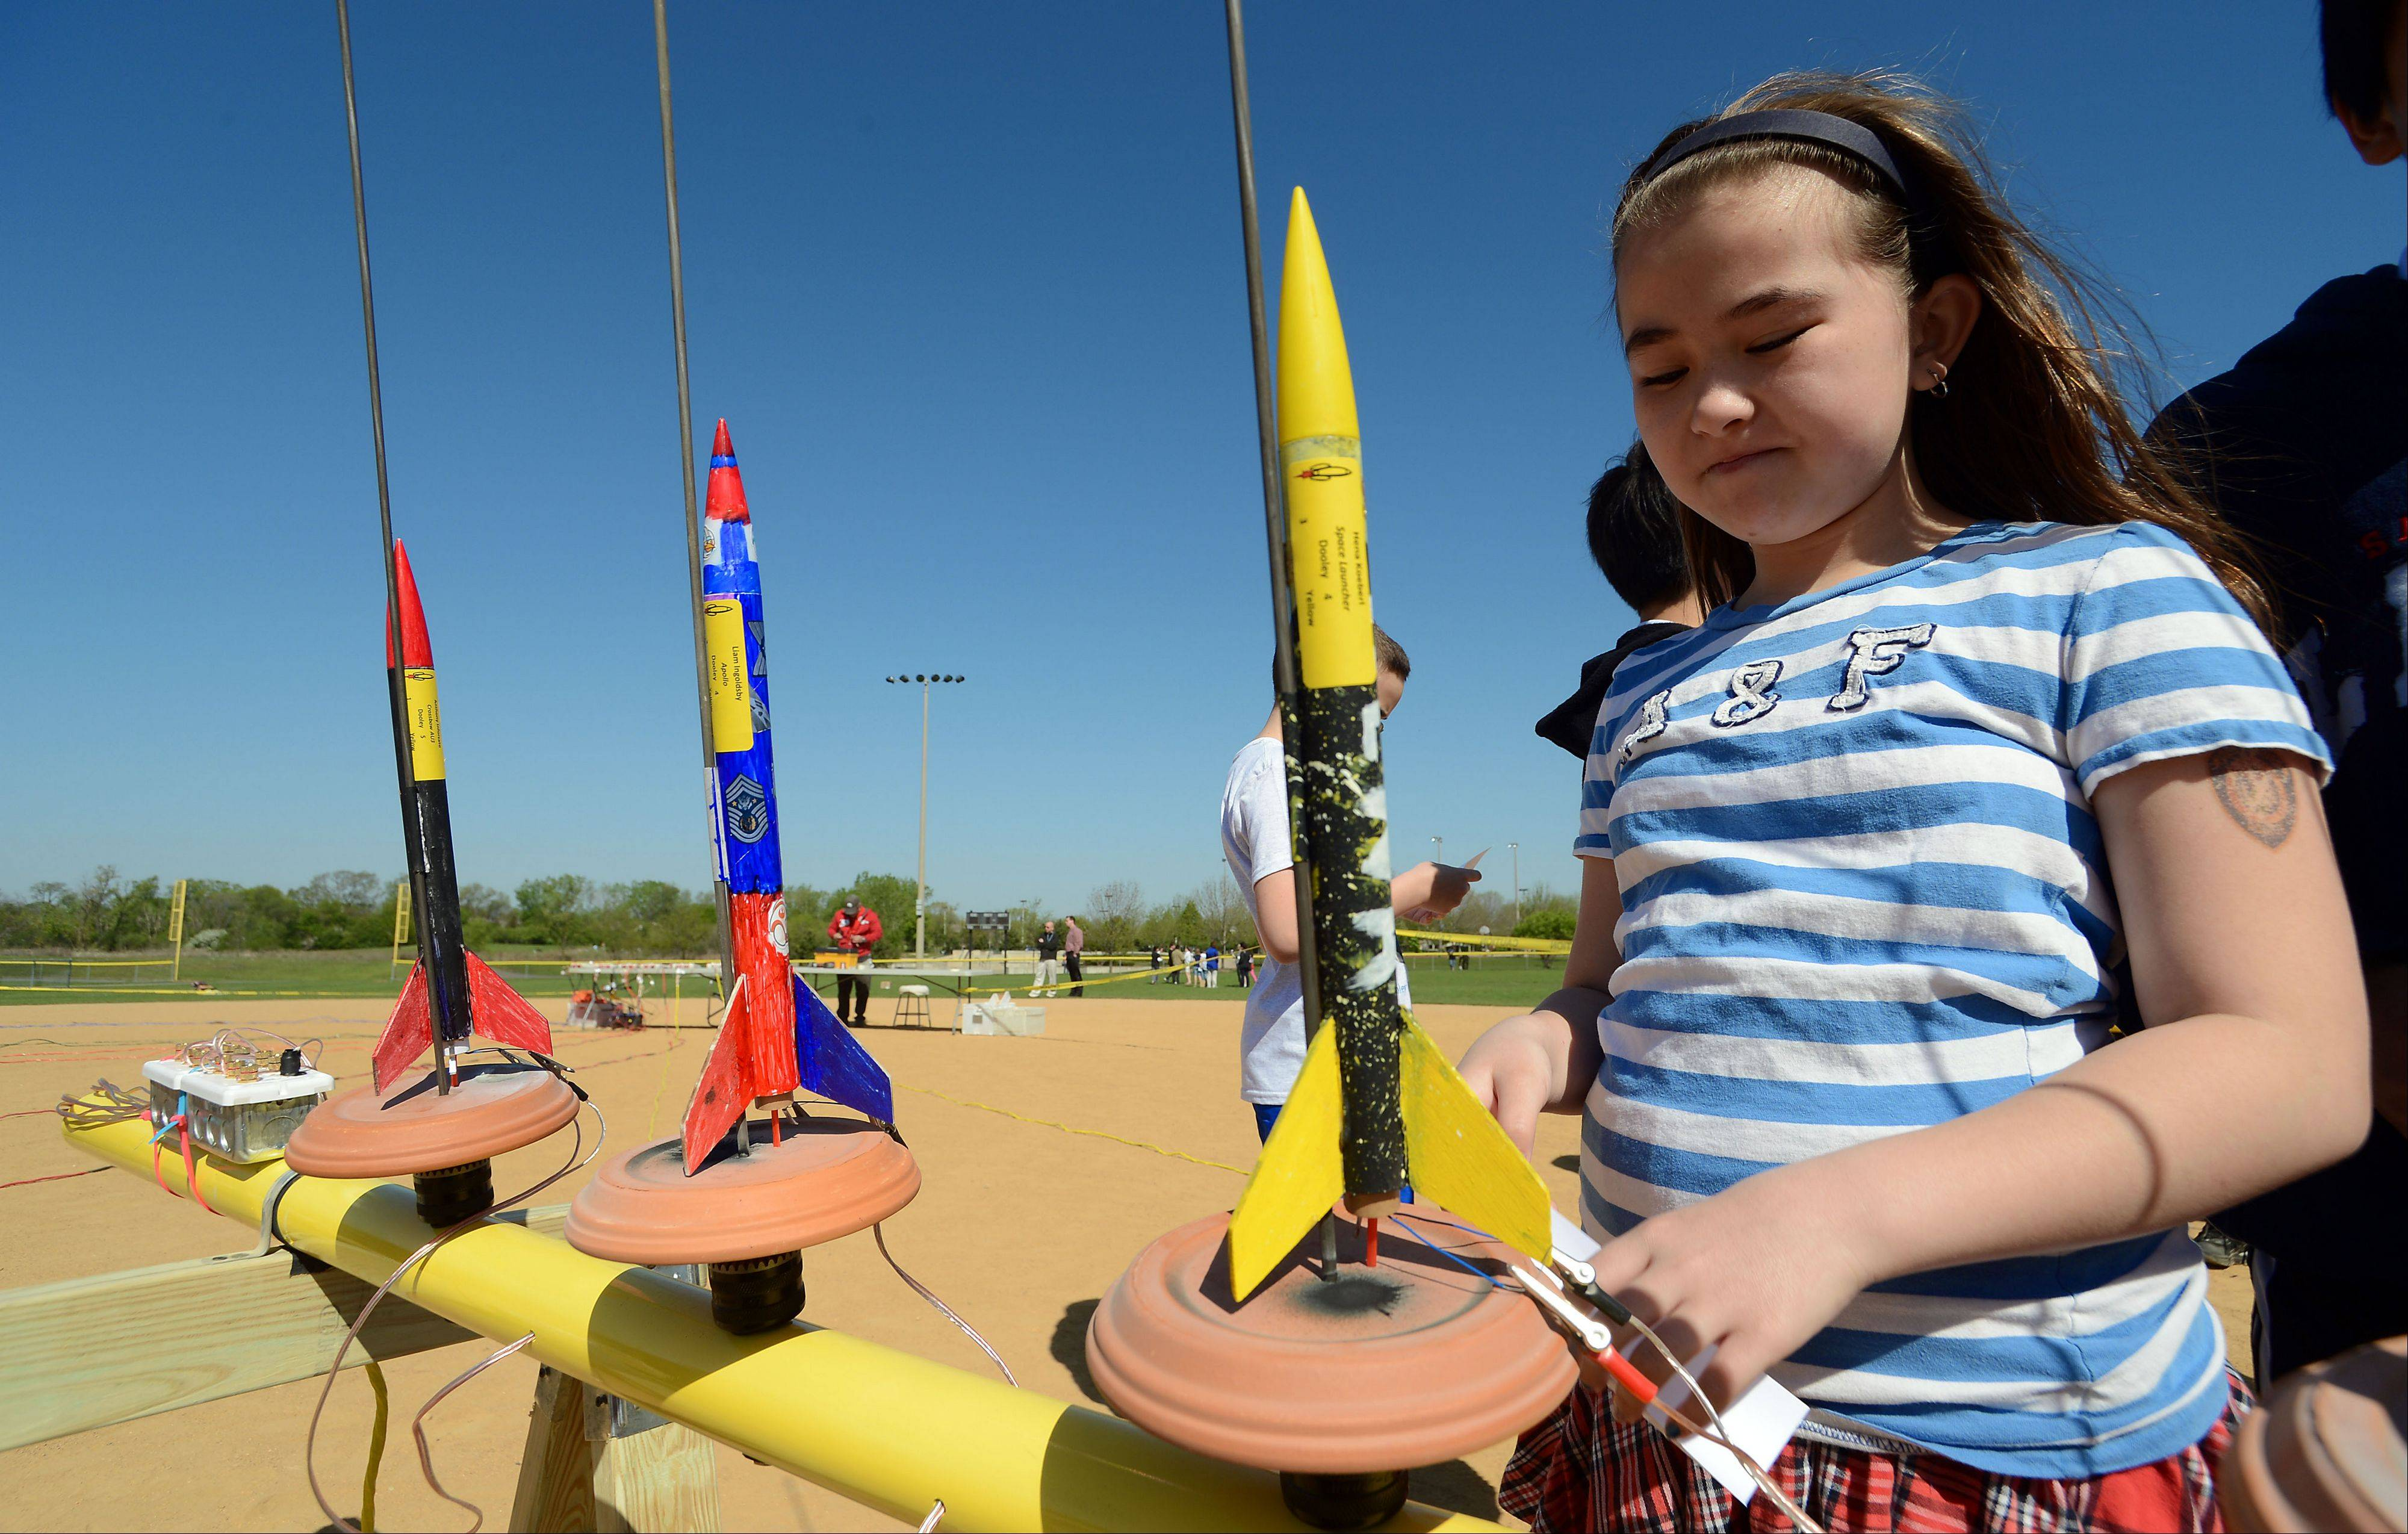 Thomas Dooley Elementary School fourth grader Hena Koeberl hooks up her rocket, called the Space Launcher, at Olympic Park in Schaumburg. Her rocket was just one of 450 rockets that took to the sky as part of school district 54 rocket launch day.